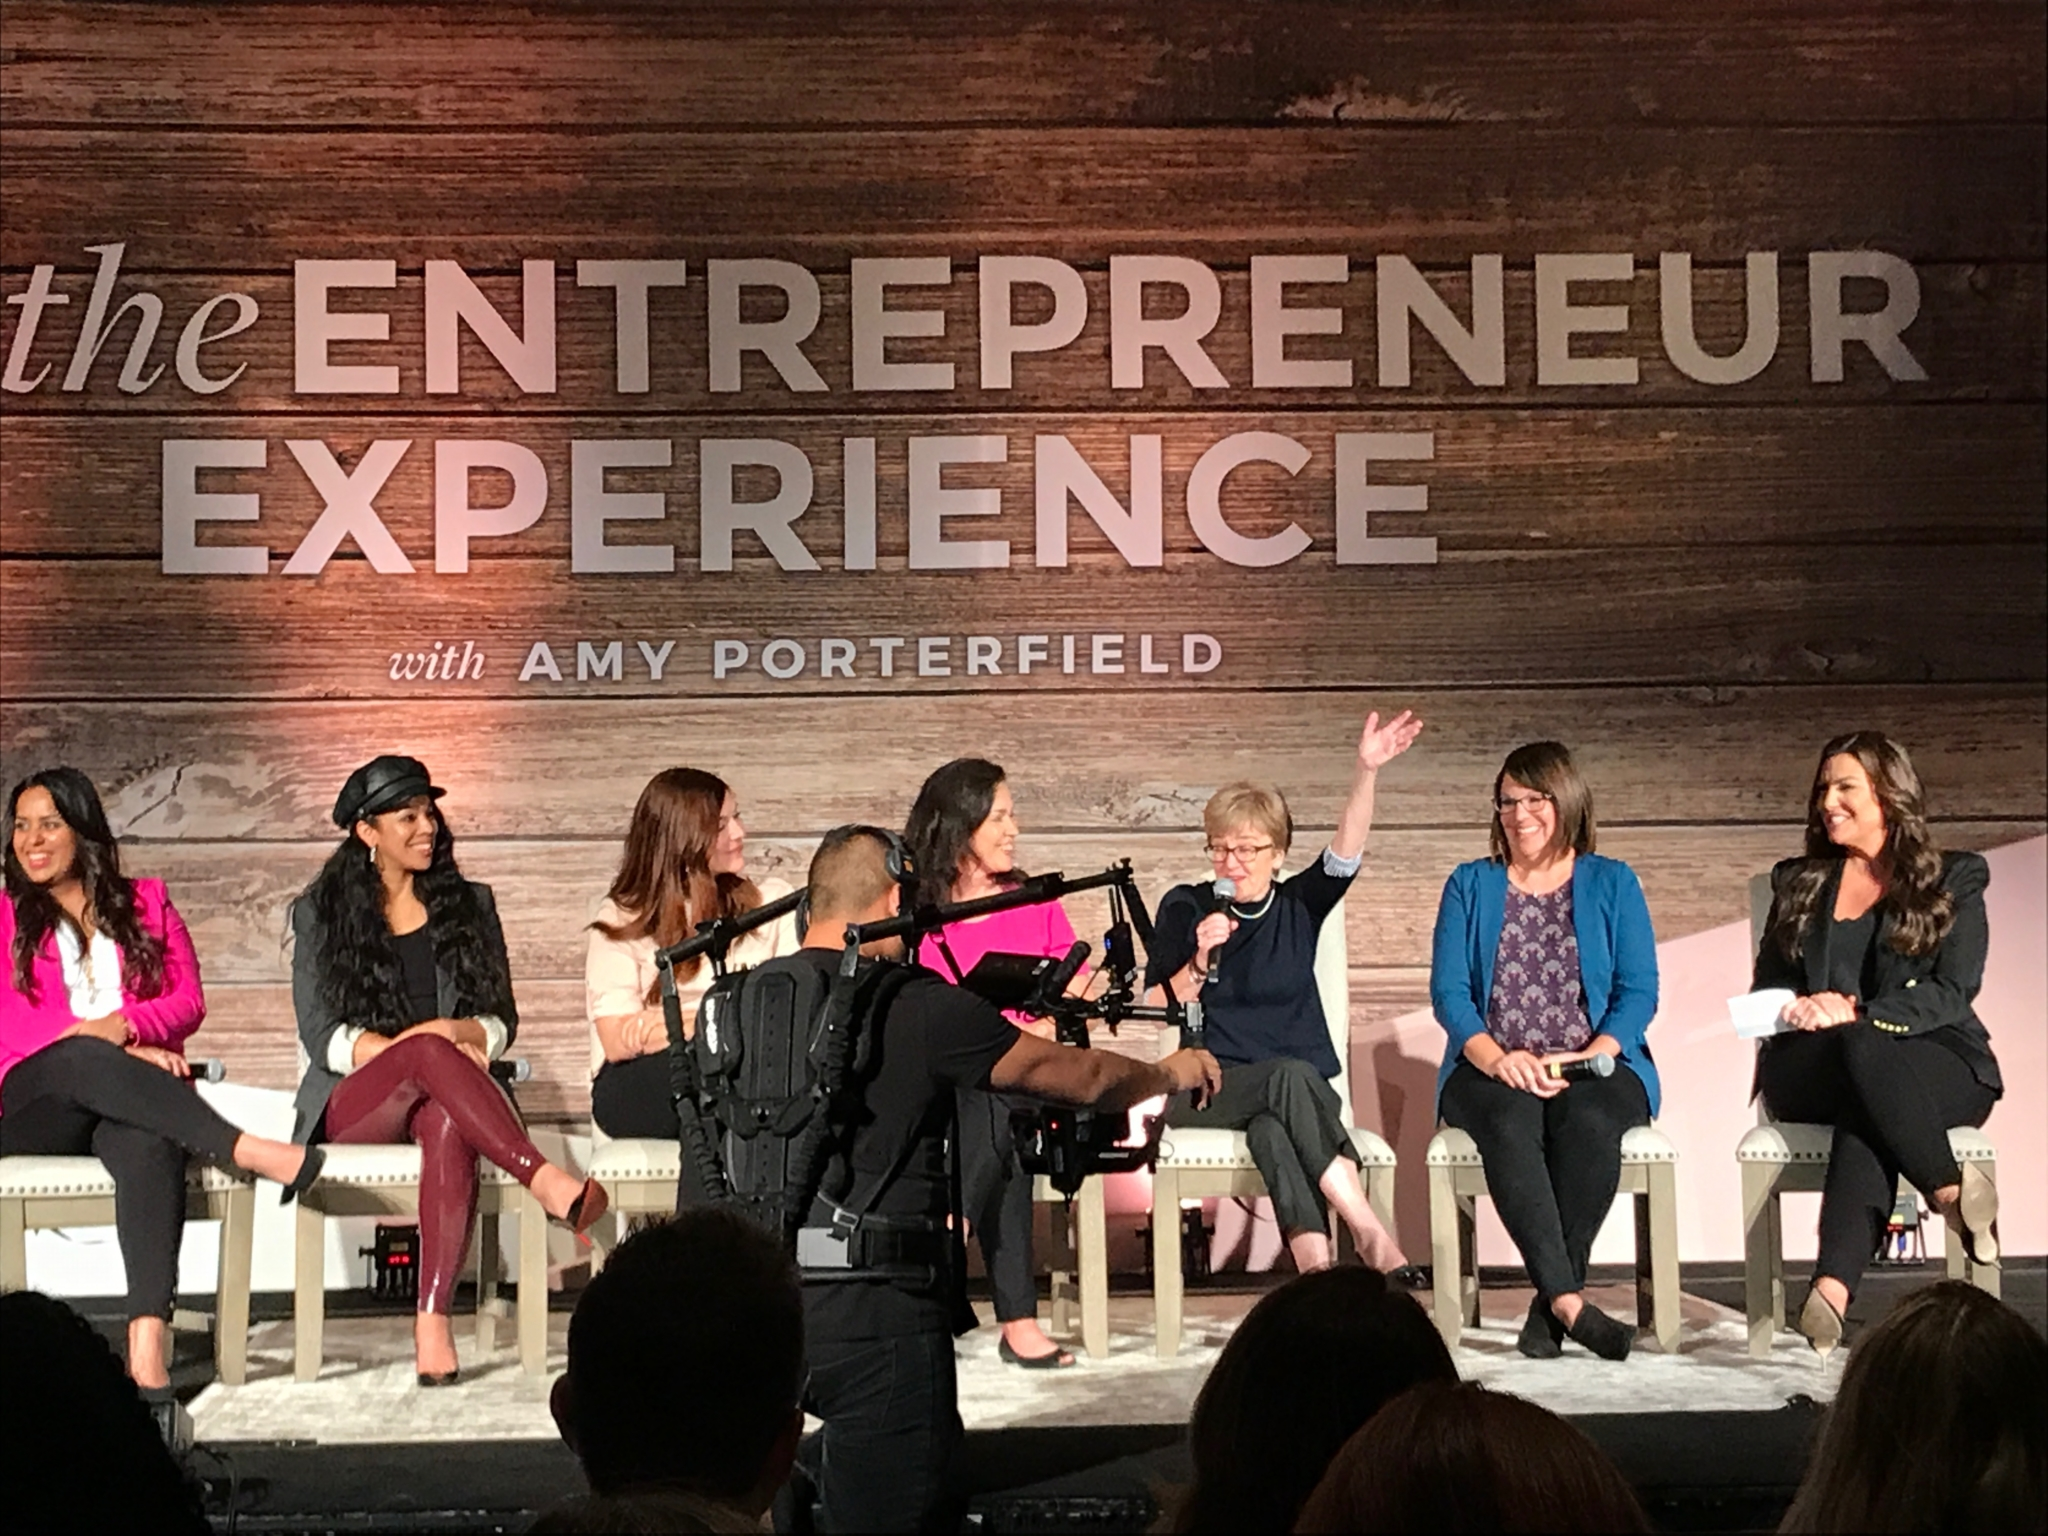 Panel discussion at the Amy Porterfield Entrepreneur Experience